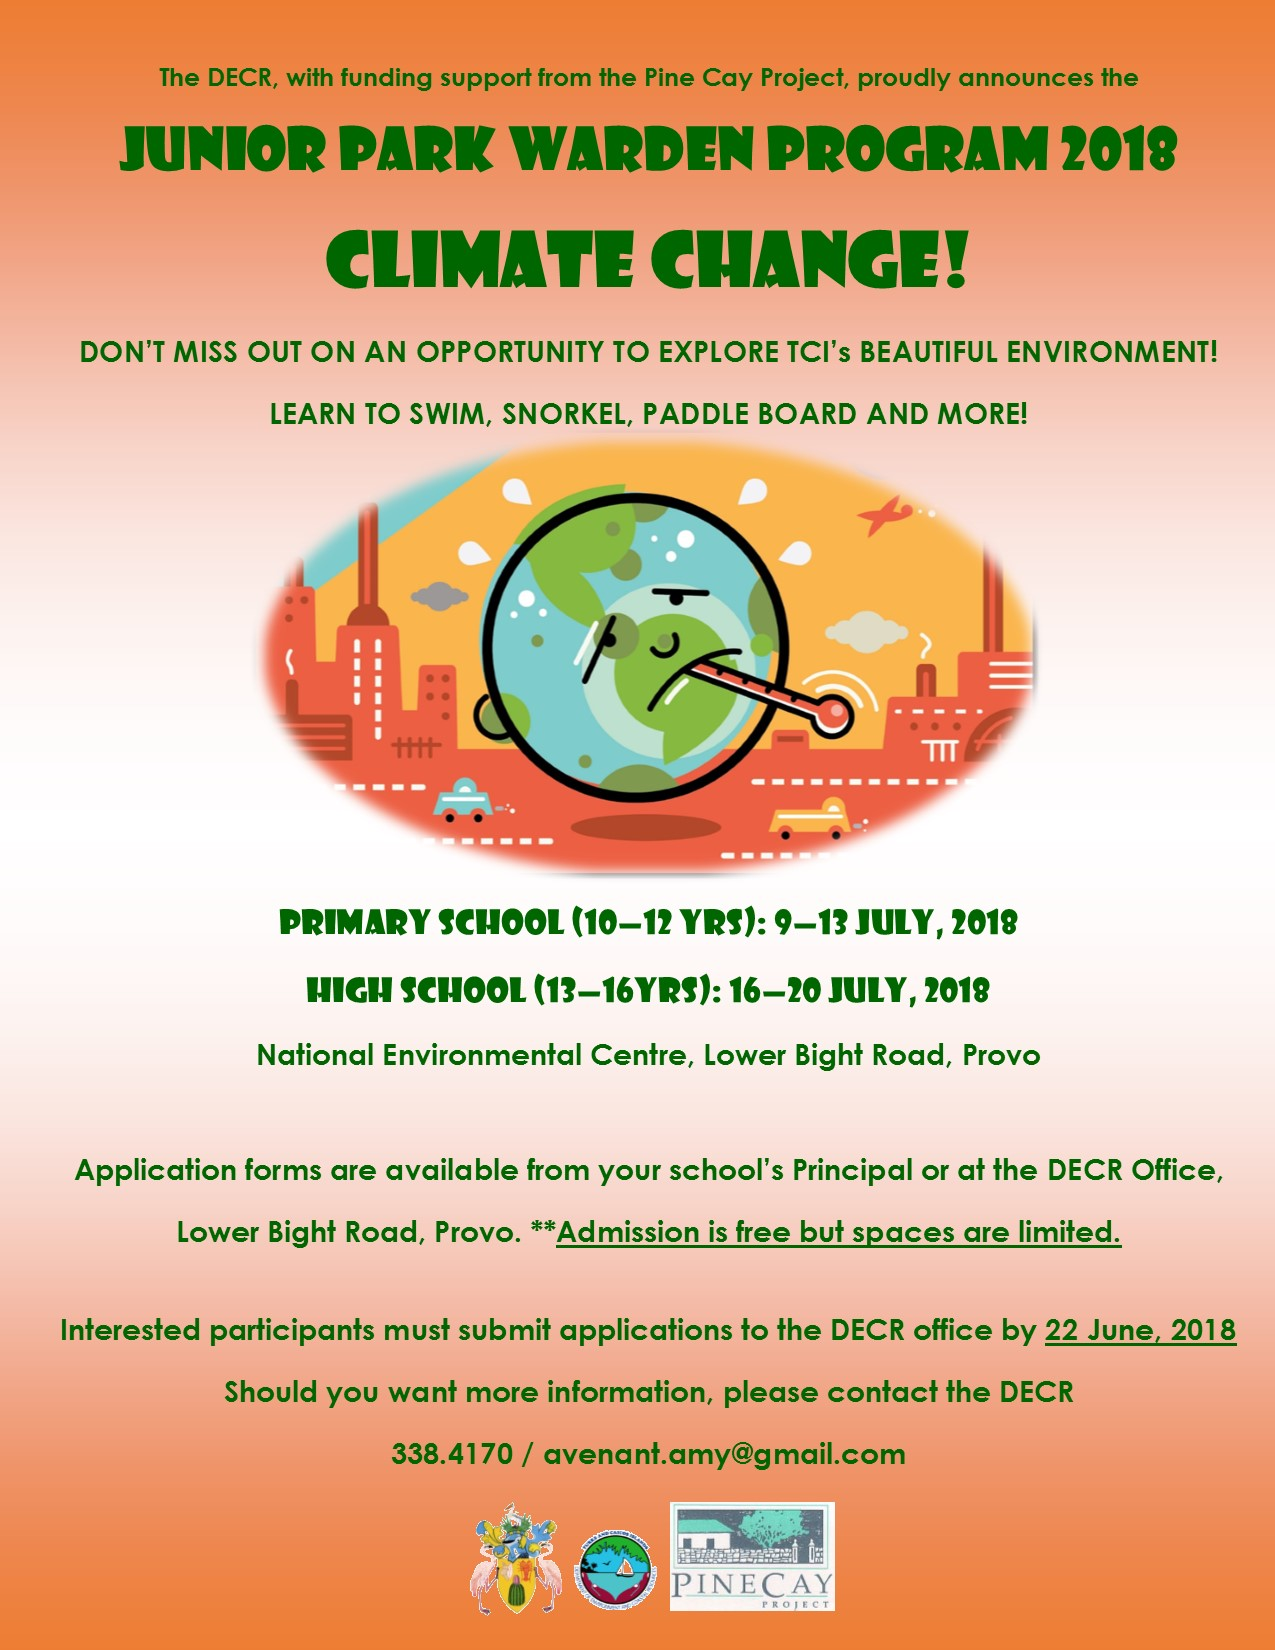 Turks and Caicos Islands Department of Environment and Coastal Resources Junior Park Warden Program Summer 2018